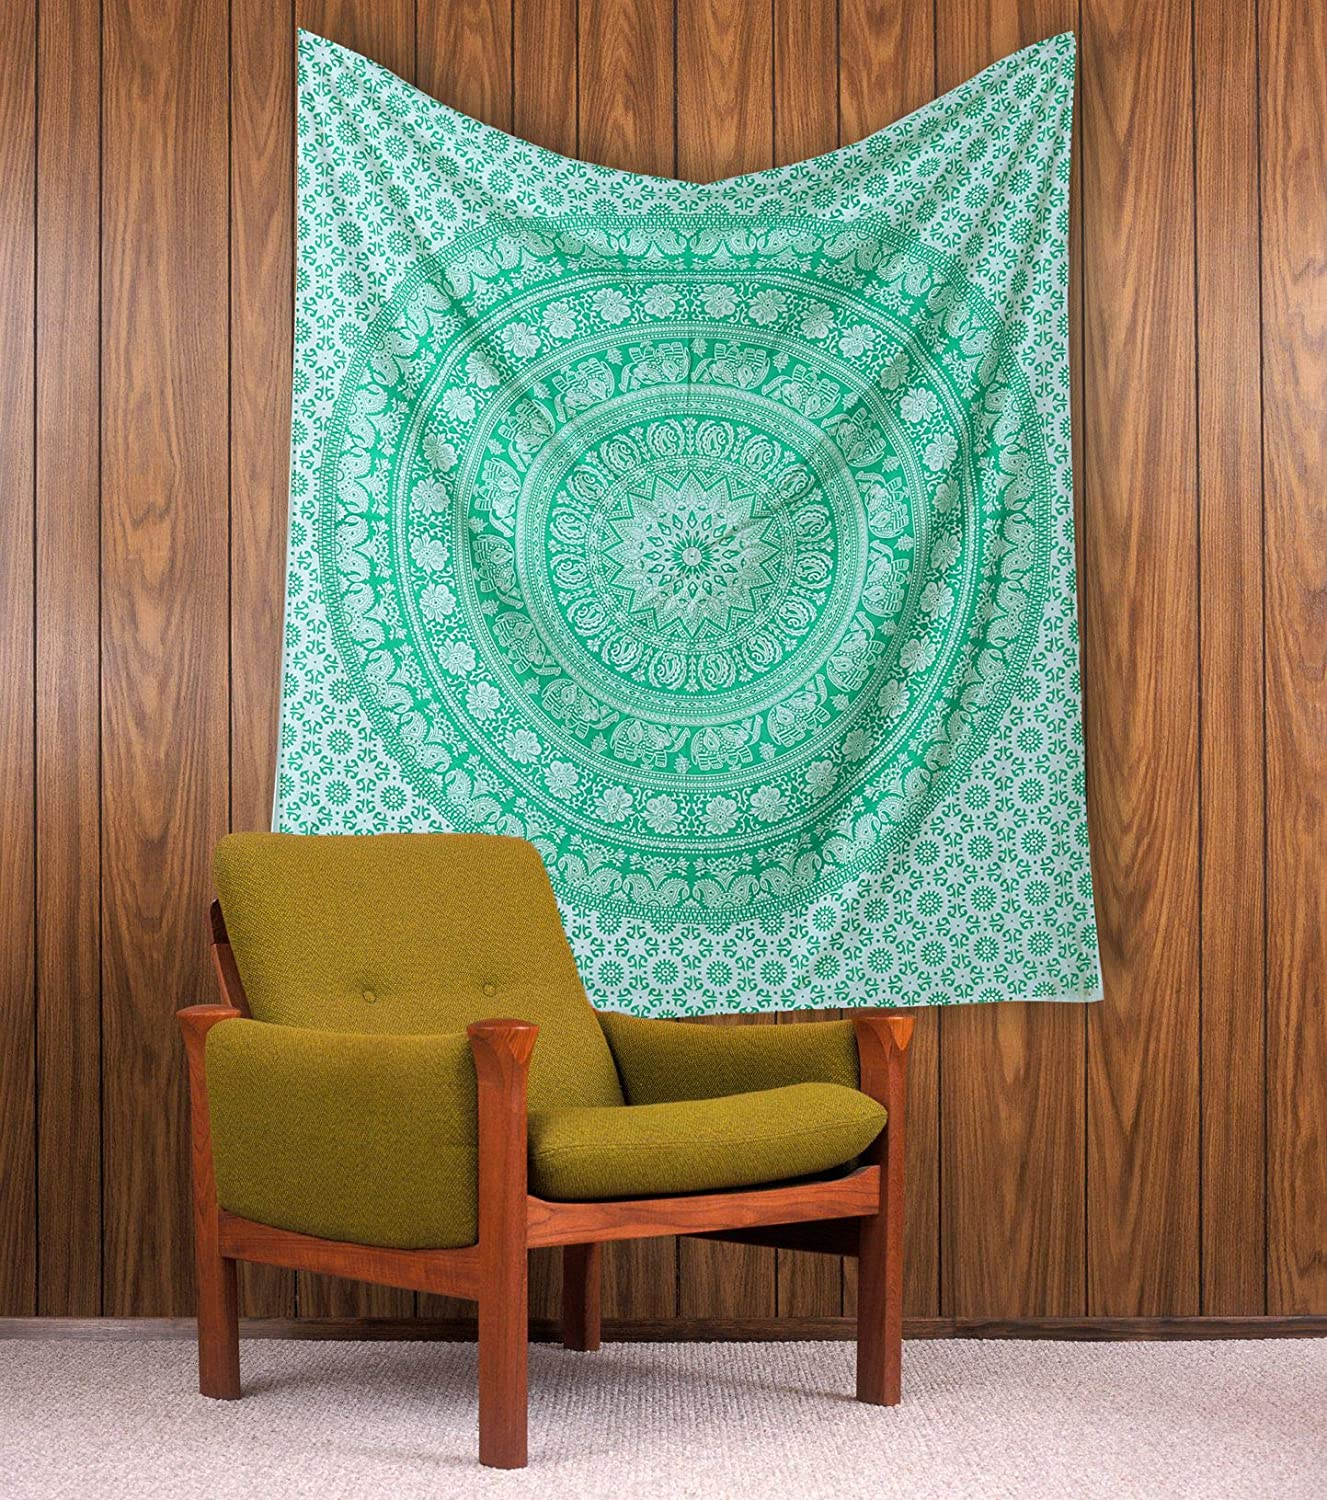 Small Tapestry Wall Decor - Elephant Mandala Tapestry Cotton Wall Hanging Hippy Tapestries Hippie Beach Throw College Dorm Decor Bohemian Boho Bedsheet - Green -50x60 Inches